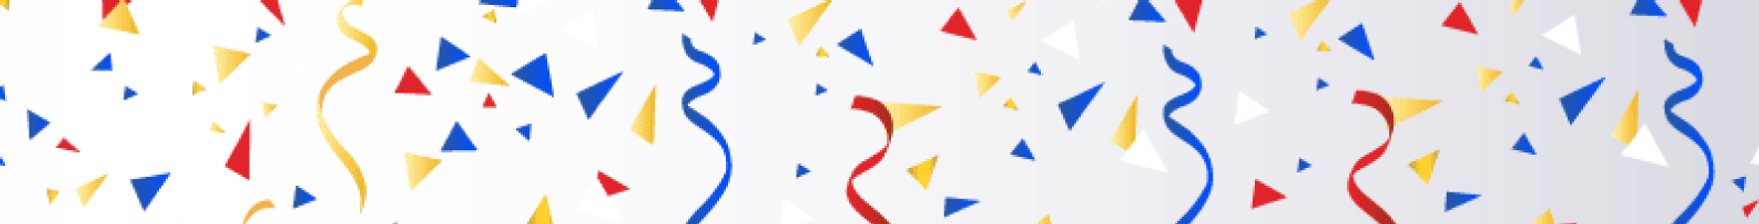 personalize_party_header_no_balloons.png